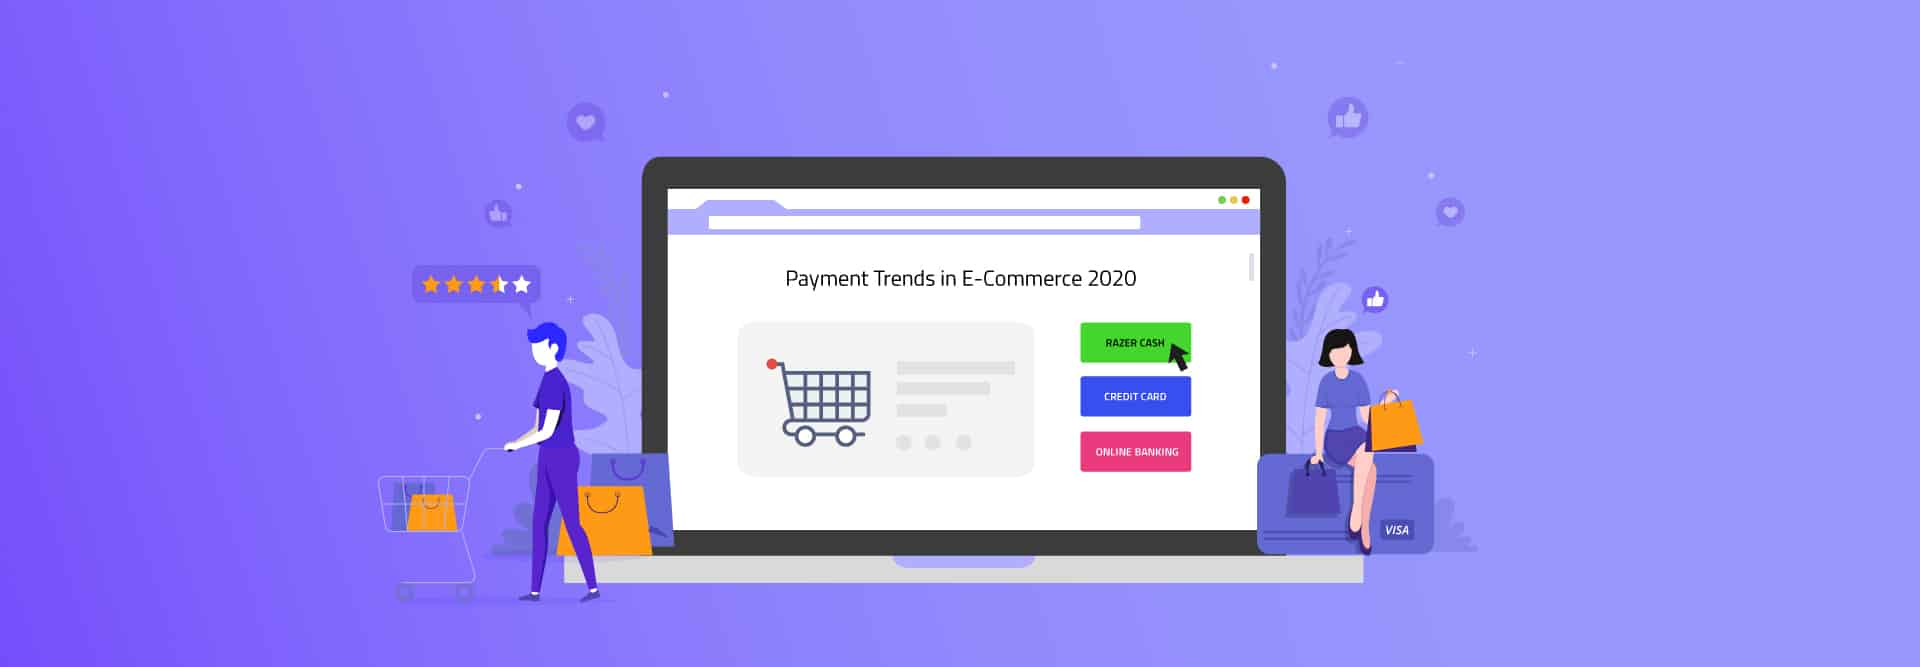 5 Payment Trends in E-Commerce to Watch out for in 2020